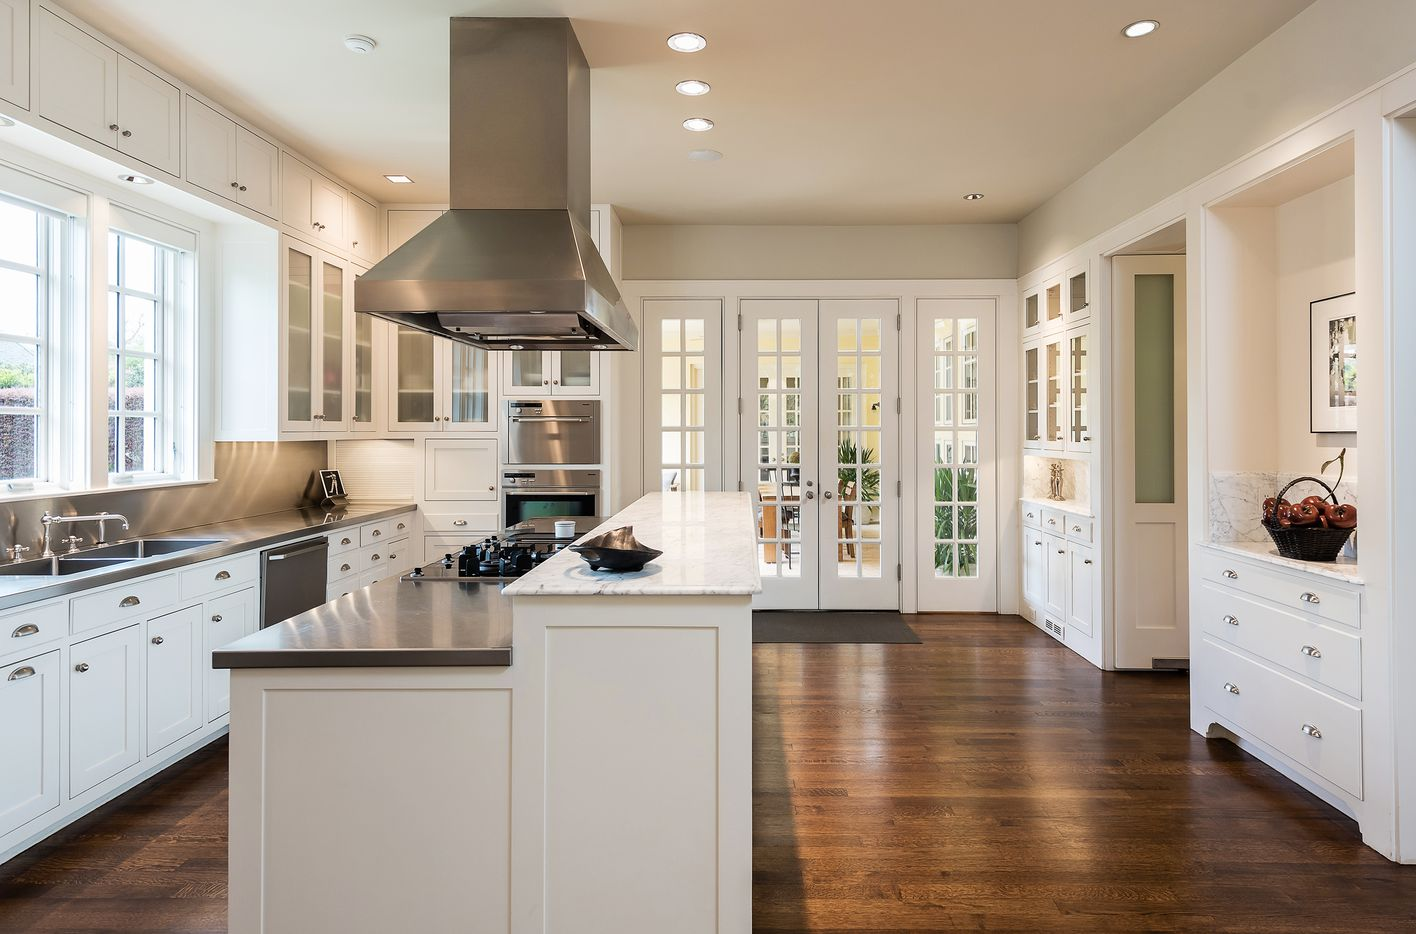 The light-filled kitchen leads to a patio.